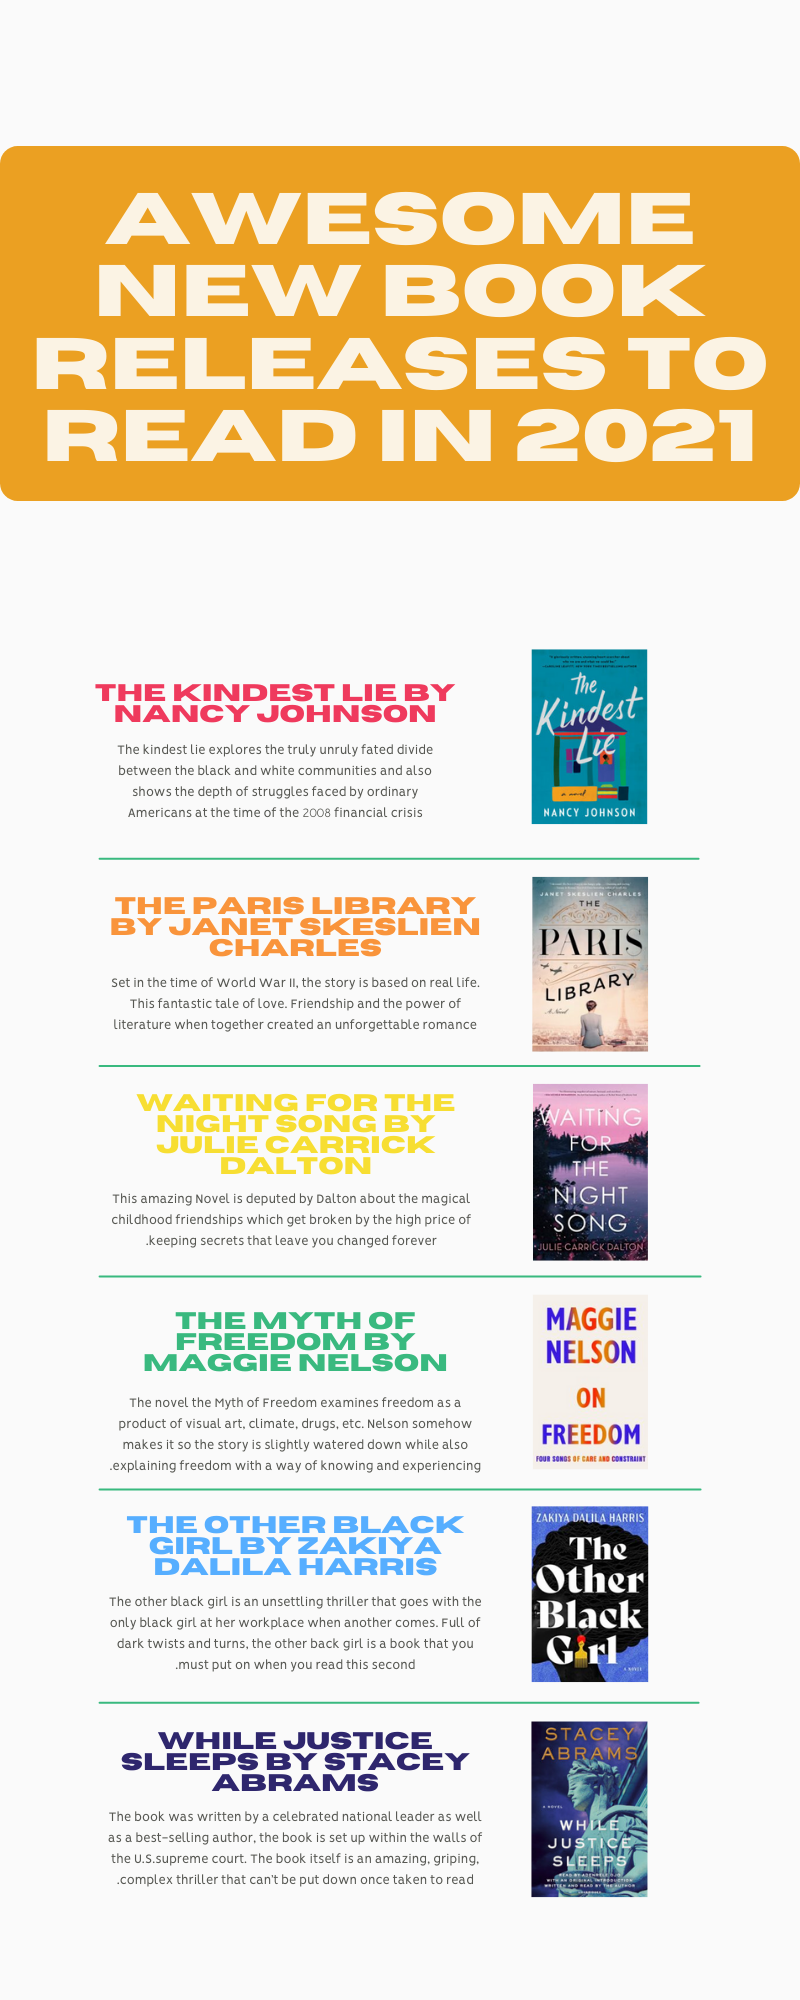 New Book Releases To Read